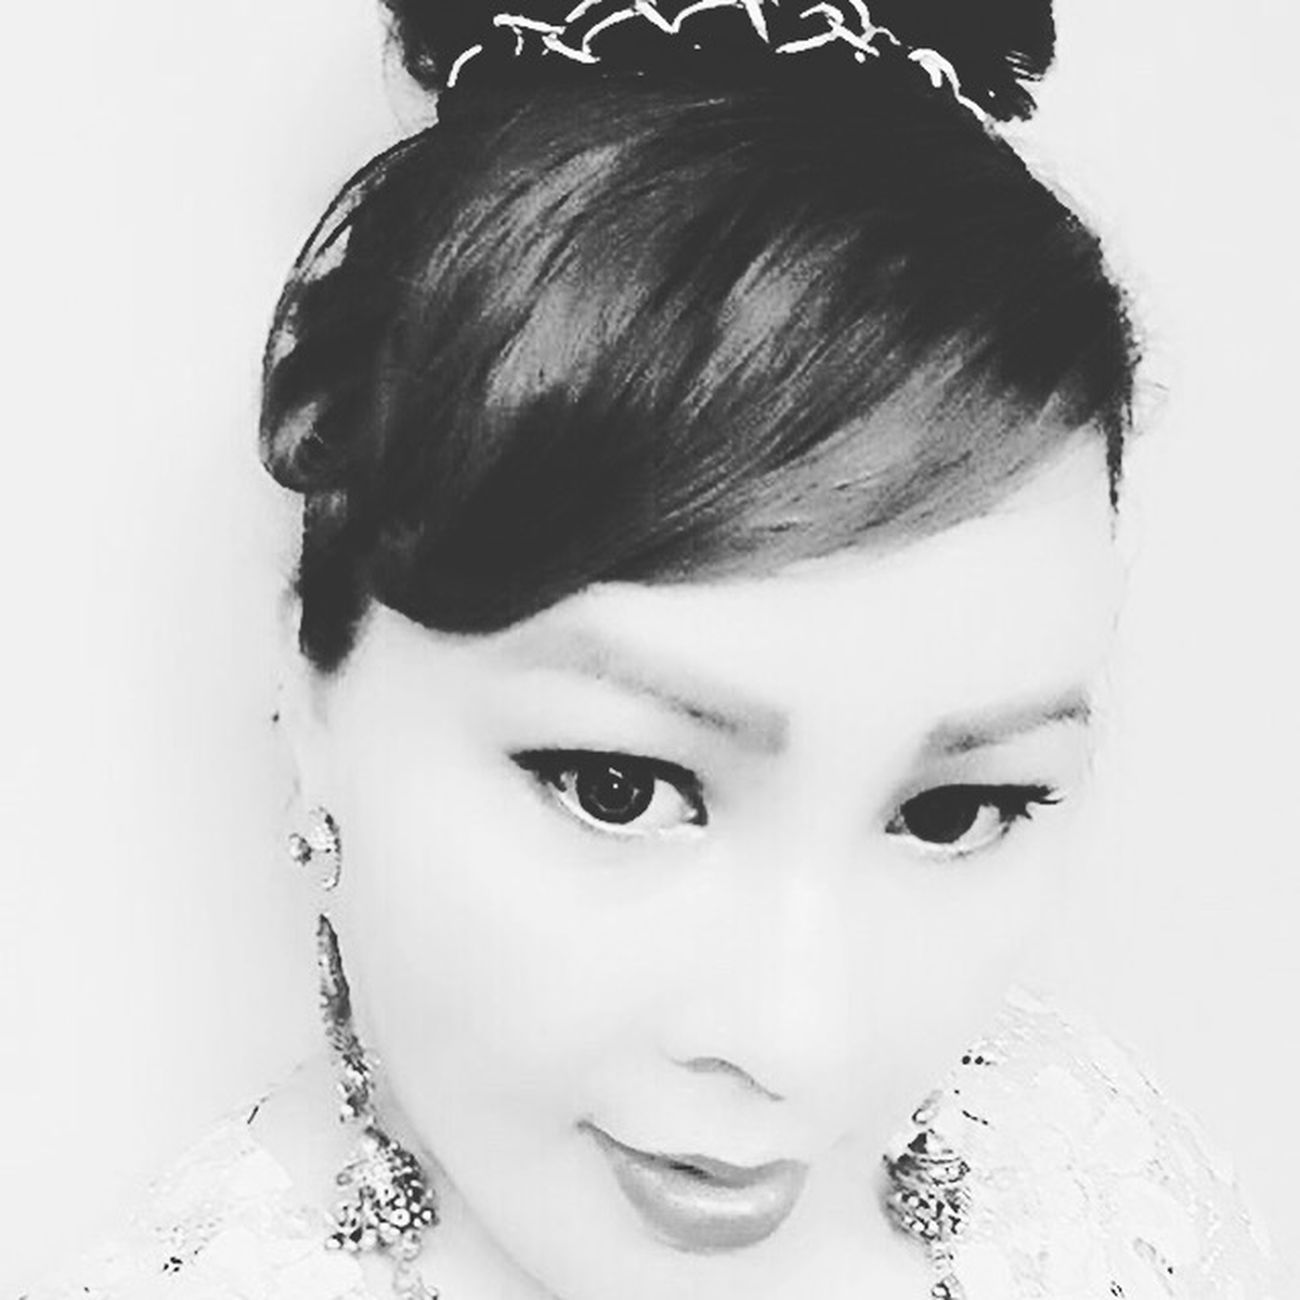 Blackandwhite Audrey Hepburn Makeover Justforfun recreating the look but not the same 😜😜😜 That's Me Practicing Fashion&love&beauty For My Own Photo Journal How Do I Look?